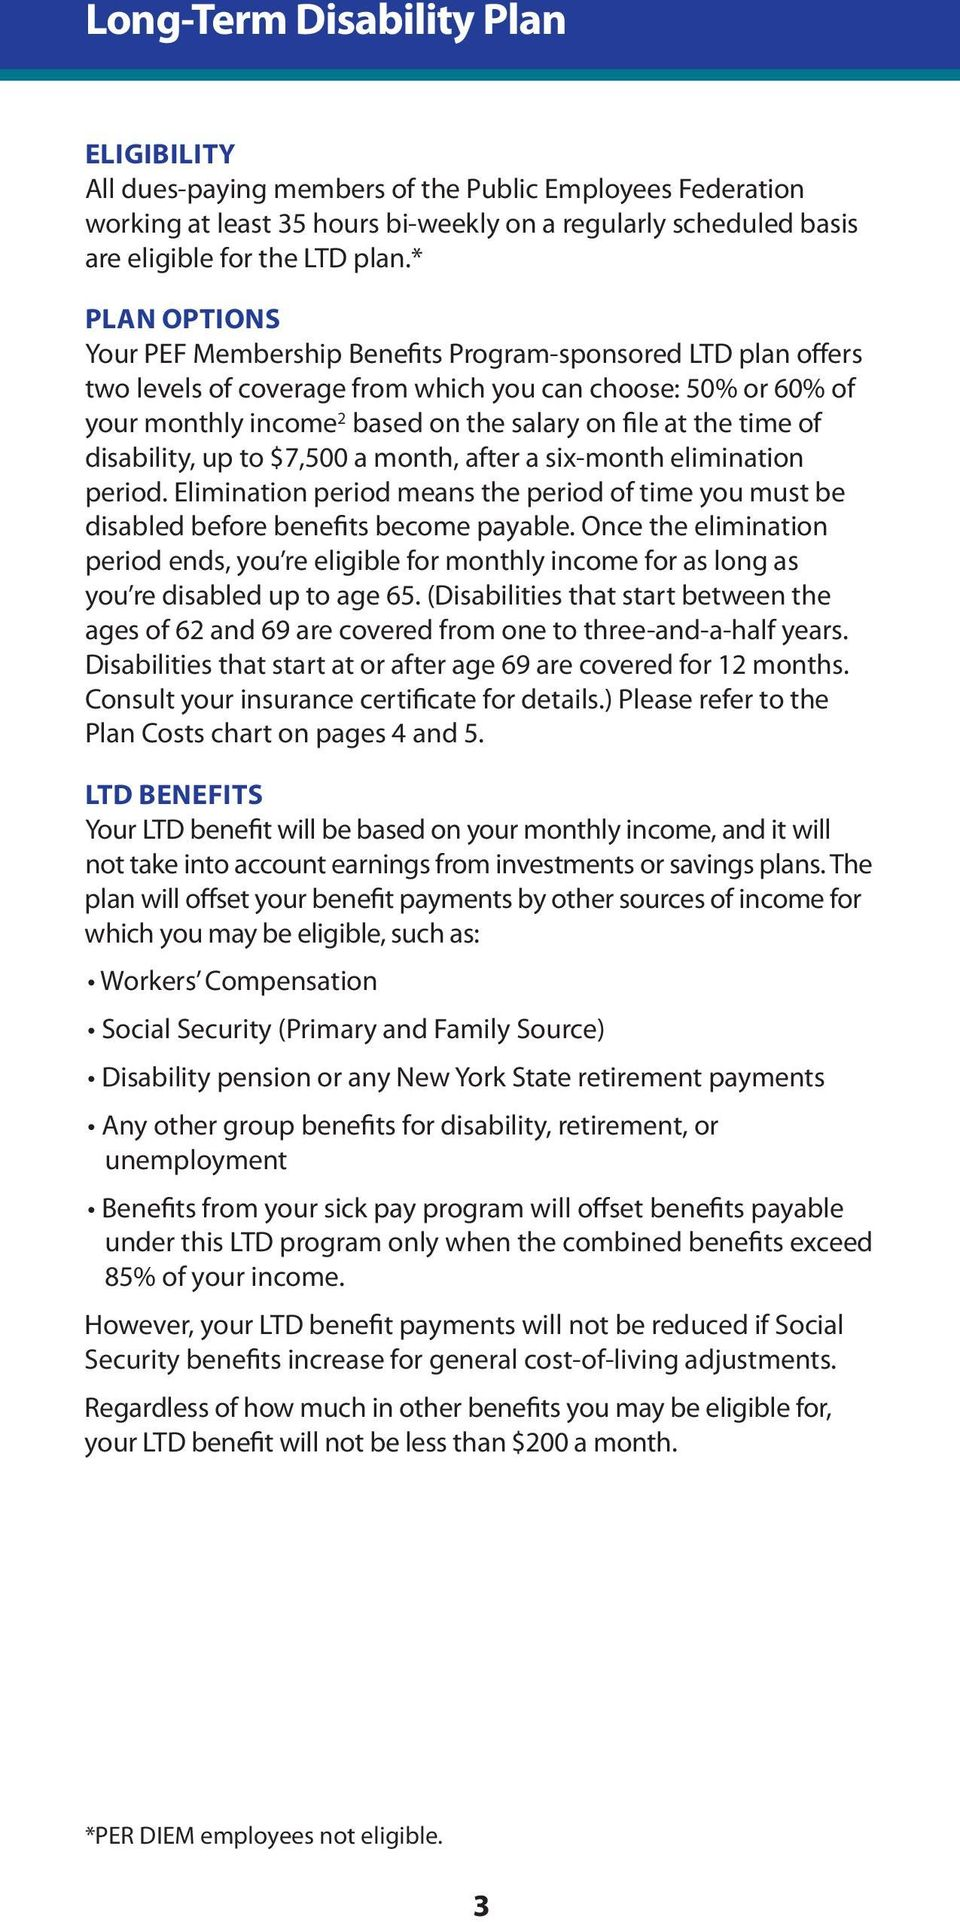 time of disability, up to $7,500 a month, after a six-month elimination period. elimination period means the period of time you must be disabled before benefits become payable.